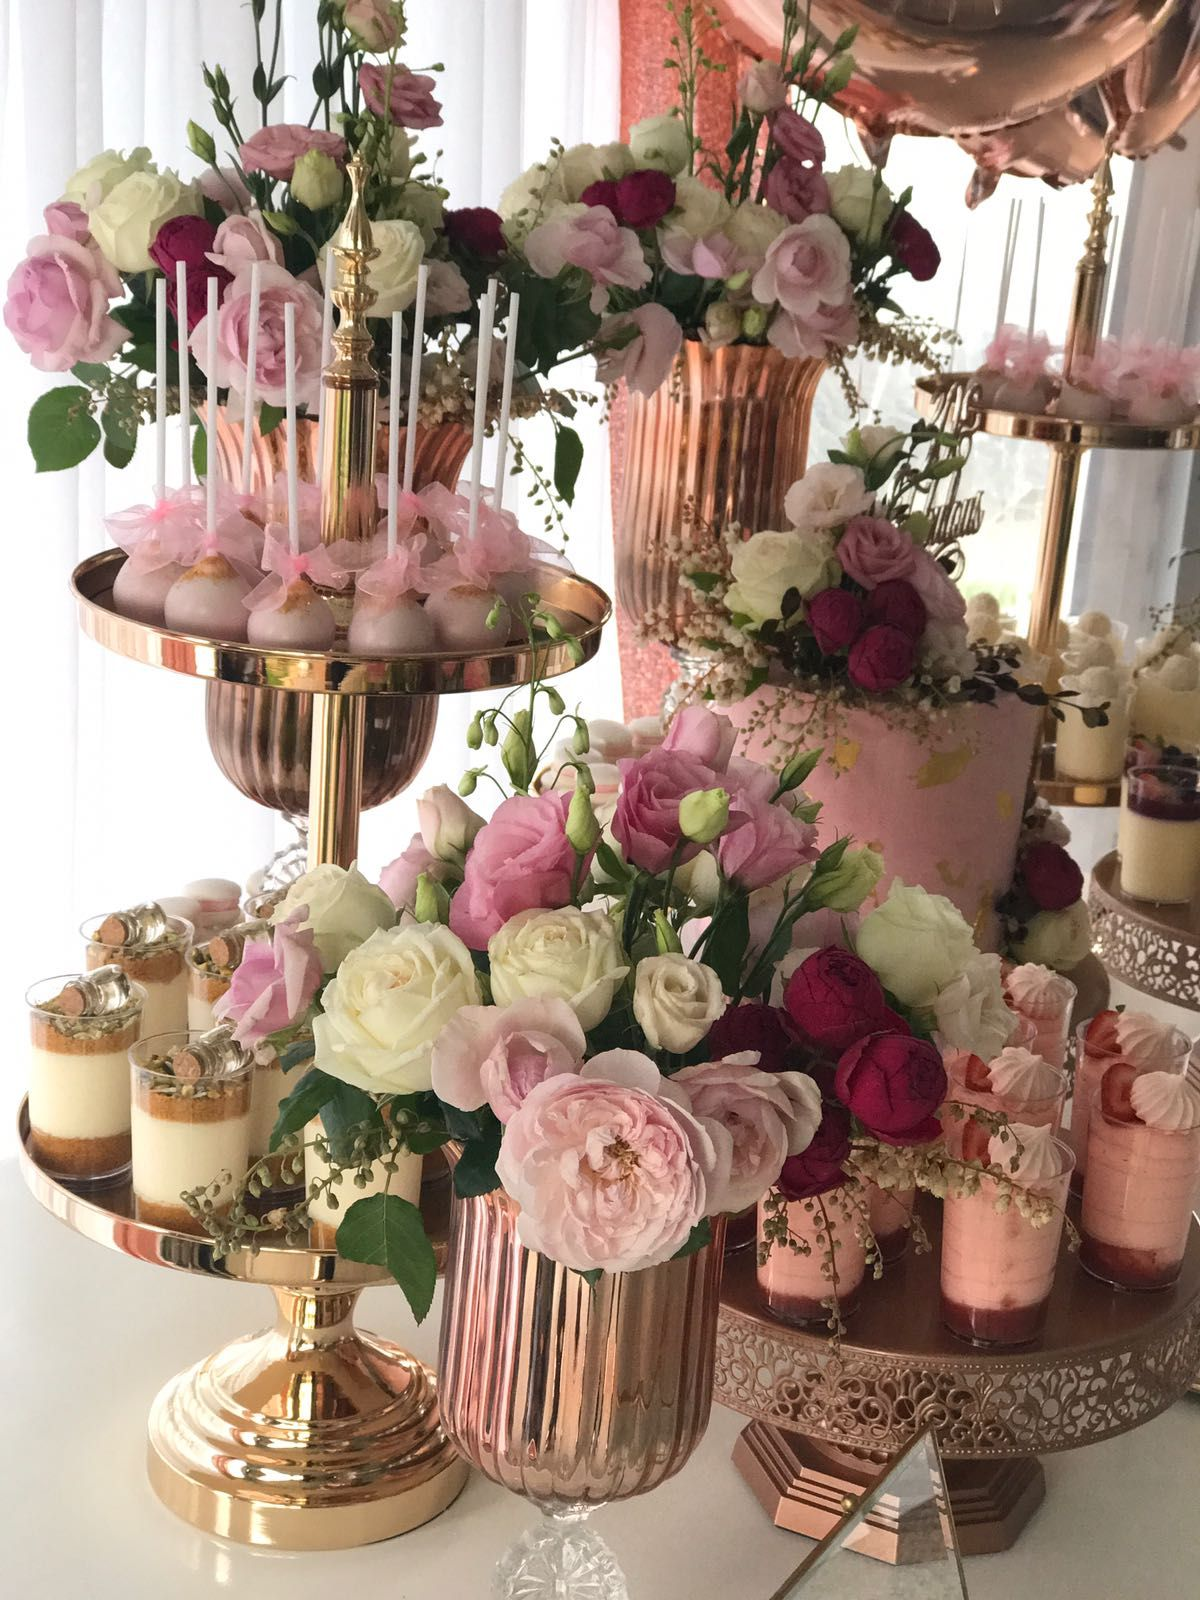 Fabulous Pink And Rose Gold Dessert Table By Creme Co By Touran Rose Gold Cake Stands By Amalfi Rose Gold Cake Gold Birthday Party Decorations Rose Gold Party